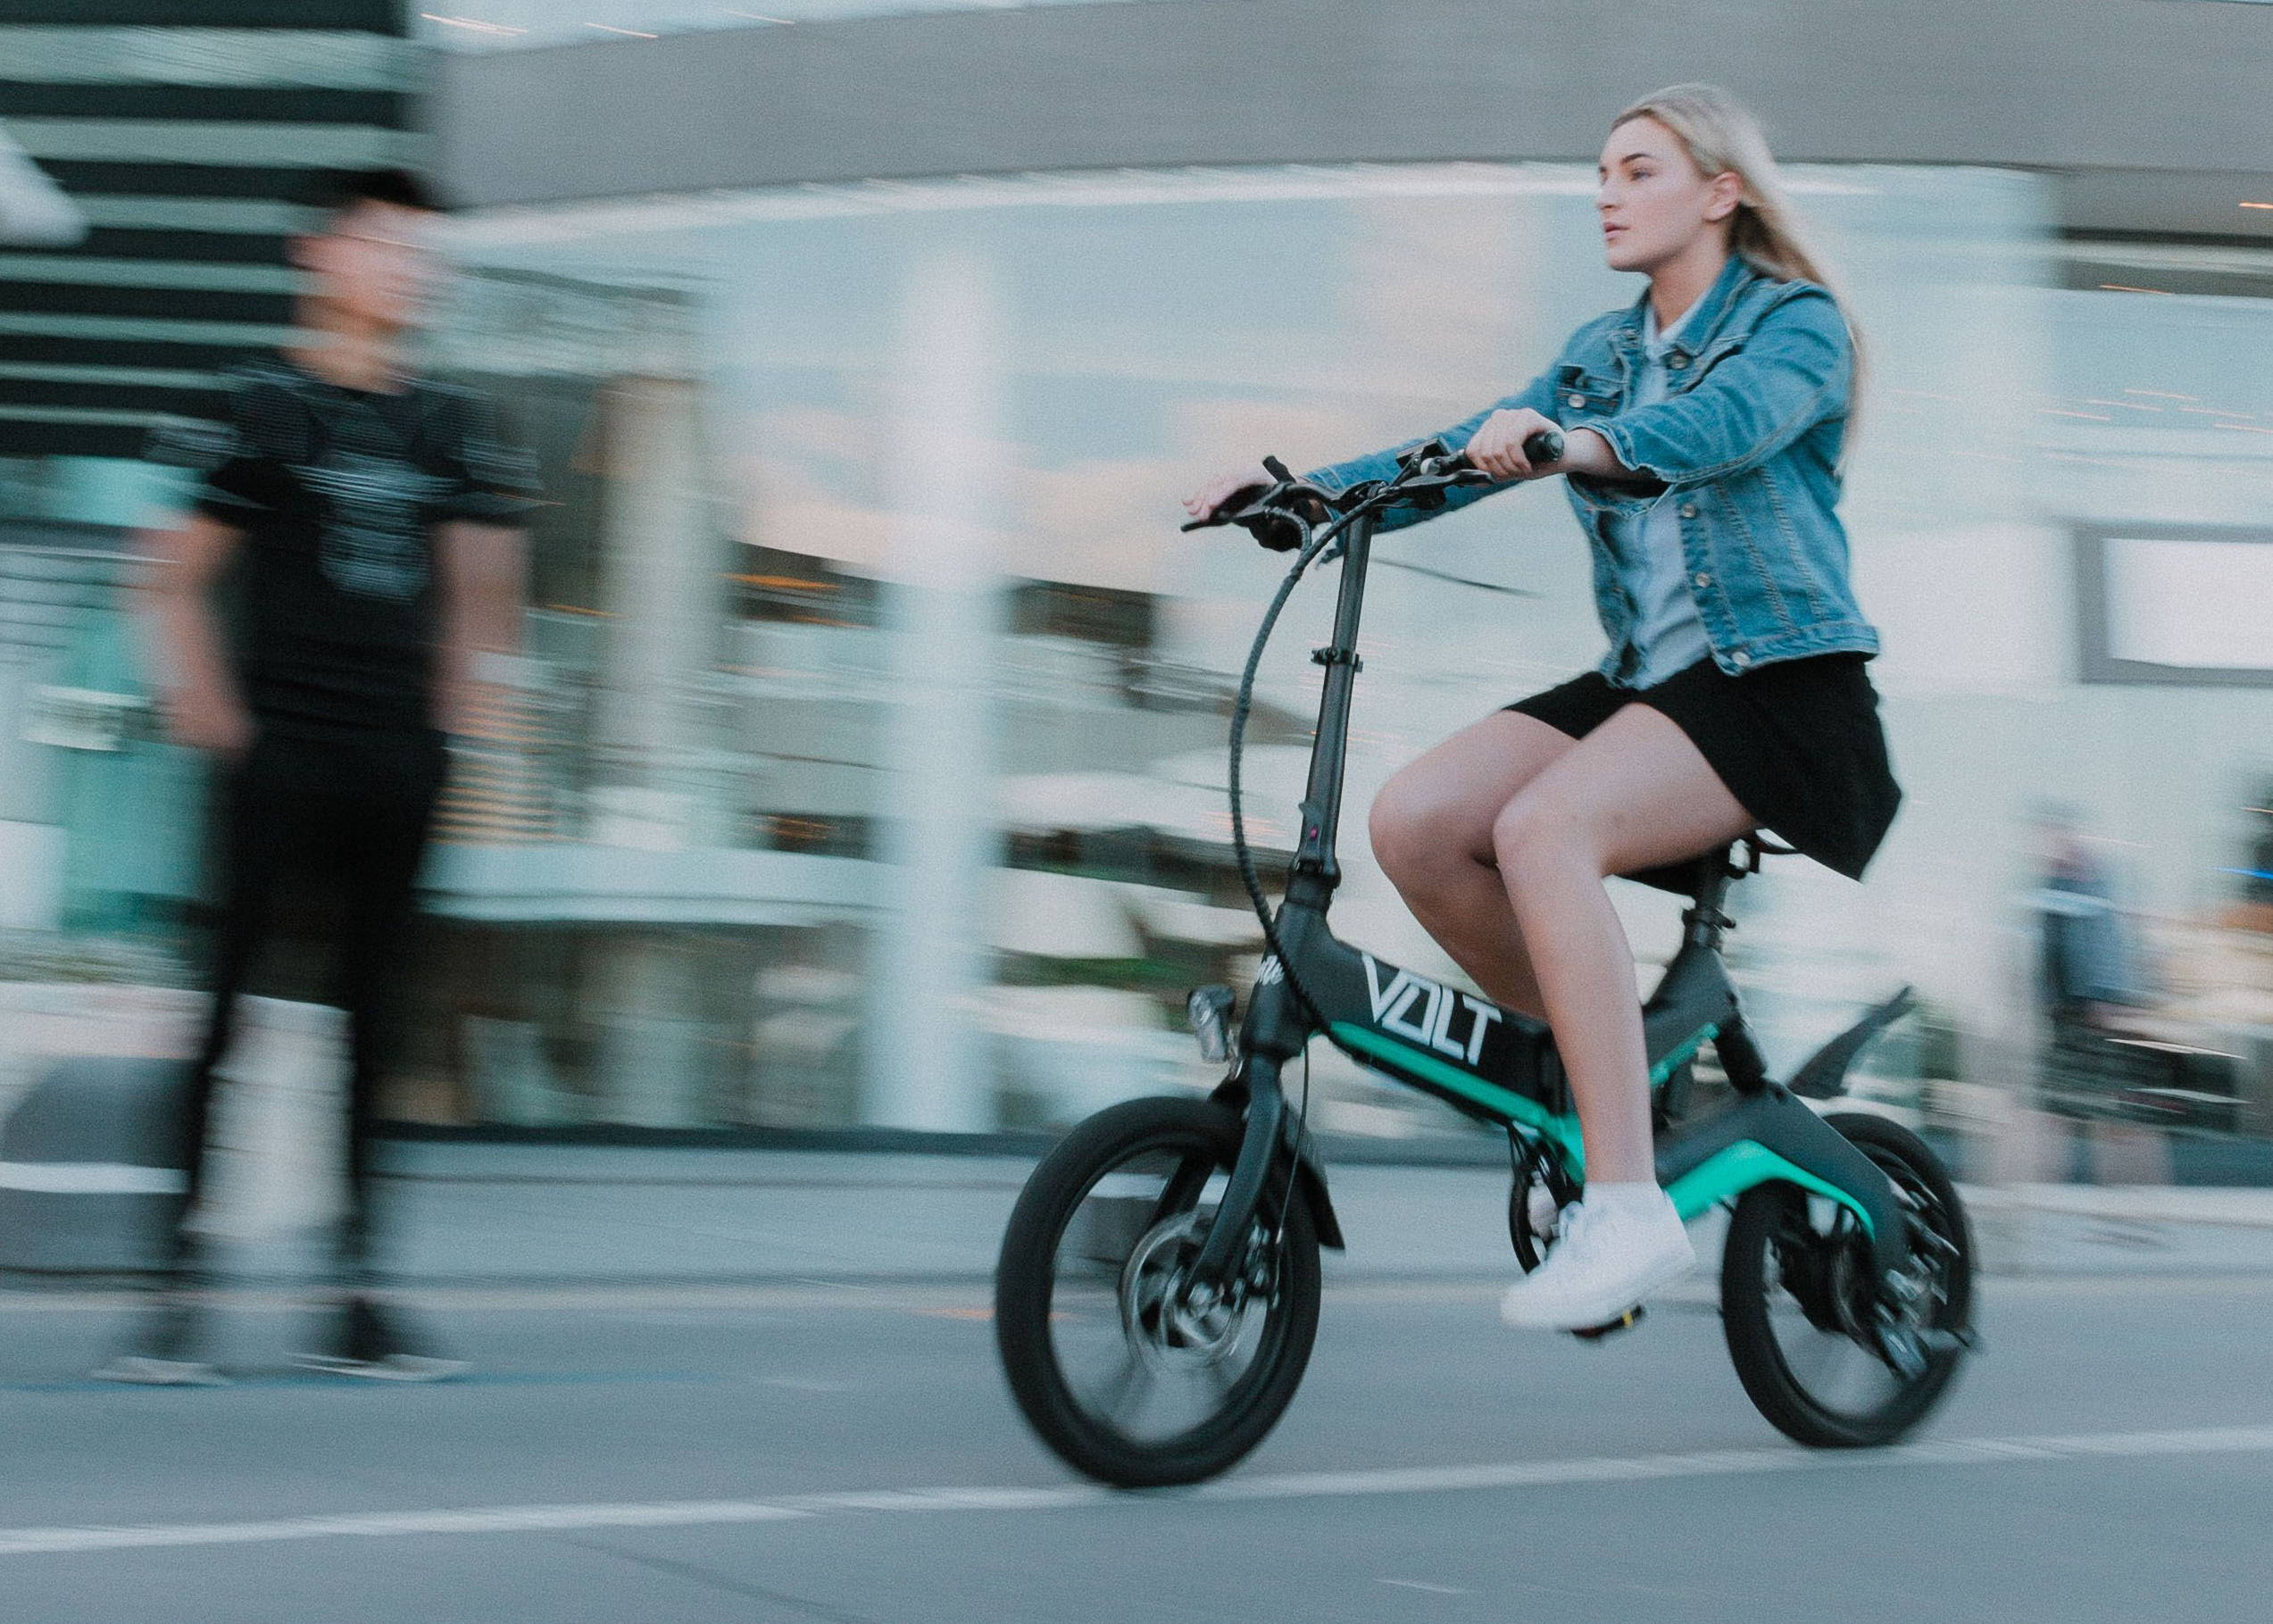 Girl riding VOLT e-bike fast in Sydney, Australia. VOLT ebike is in Sydney. Stand out Sydney e-bike because the VOLT Mate can travel faster than other electric bikes and pedal bicycles. The VOLT mate also has a very modern design with streamlined design features. The VOLT mate is crafted in aerospace grade materials and finished in matte and gloss finishes. effortless electric bike riding.